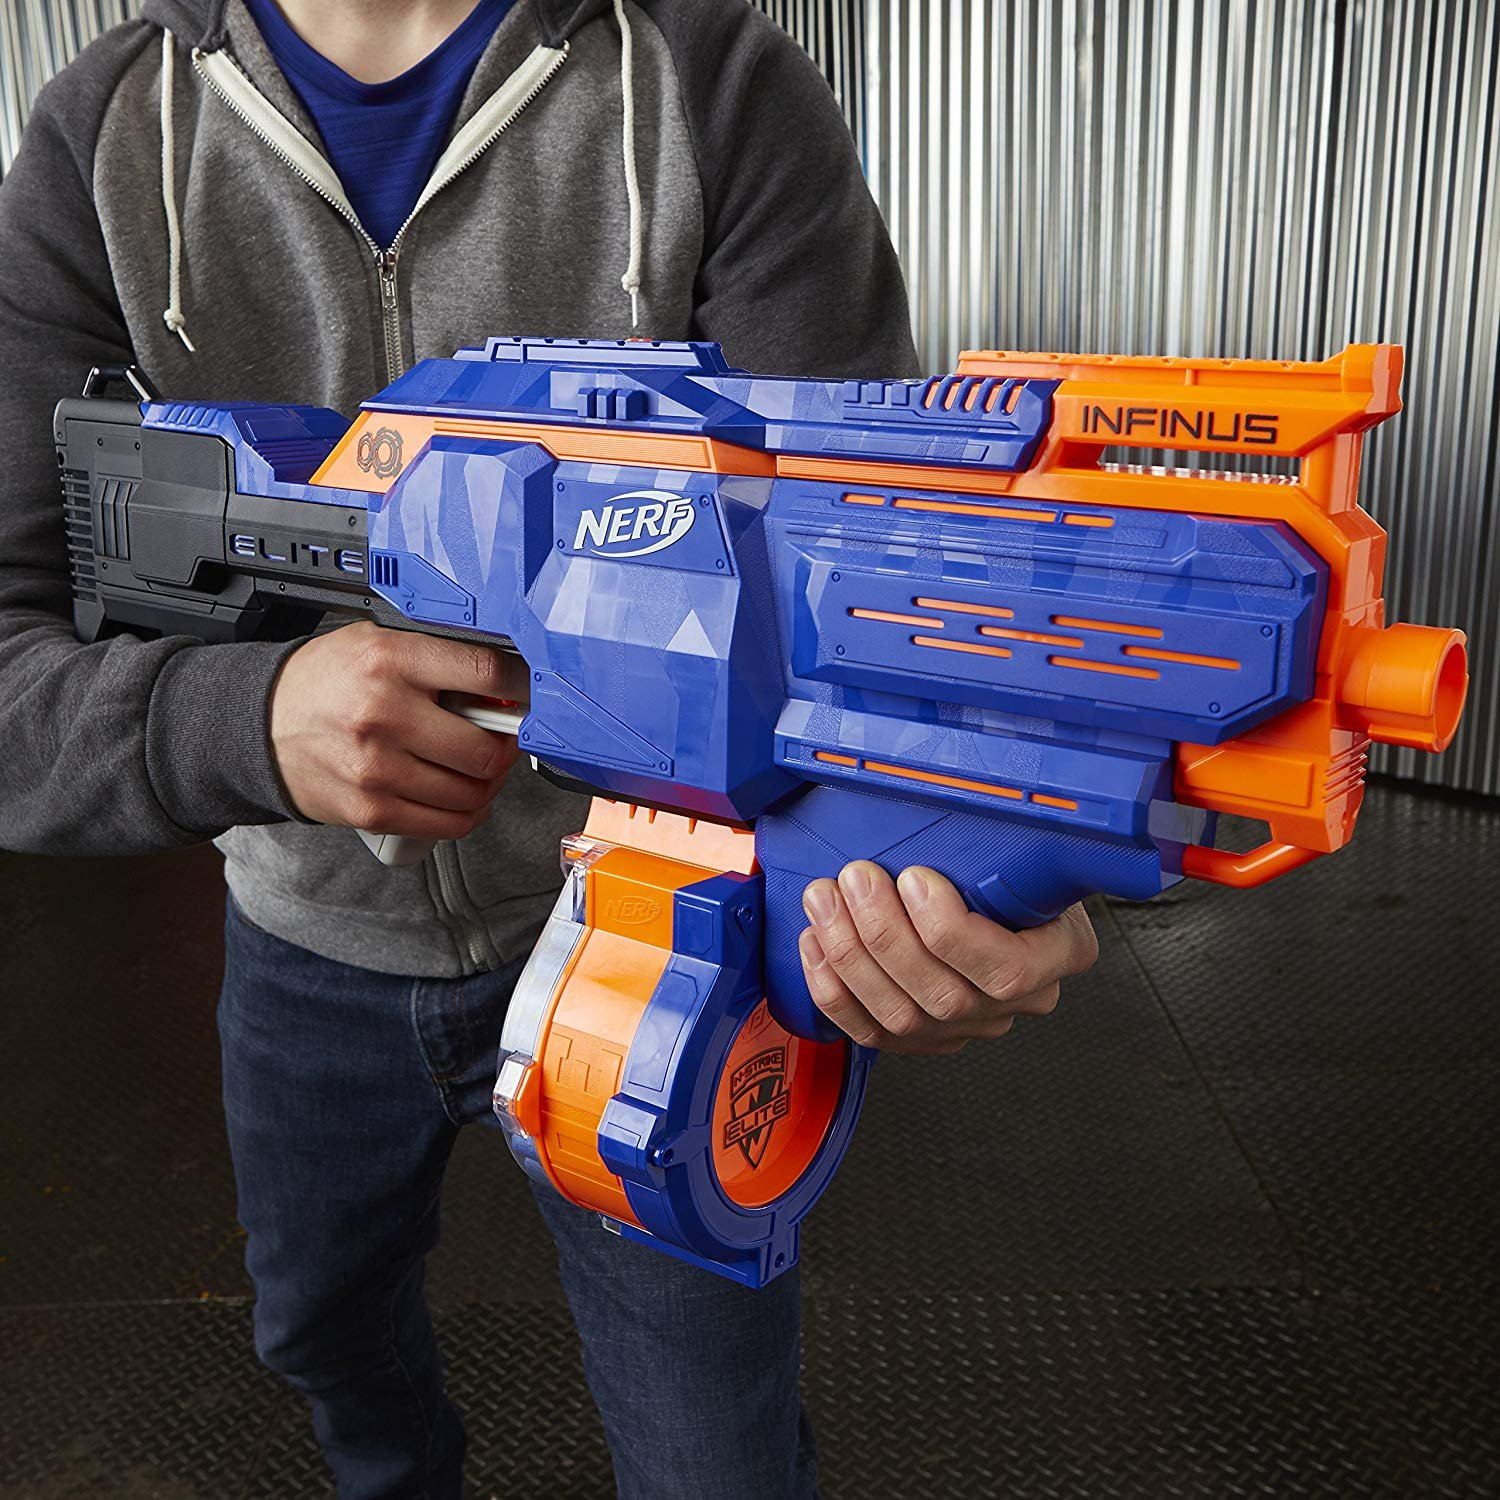 NERF Infinus N-Strike Elite Toy Motorized Blaster with Speed-Load Technology (FFP) by NERF (Image #6)